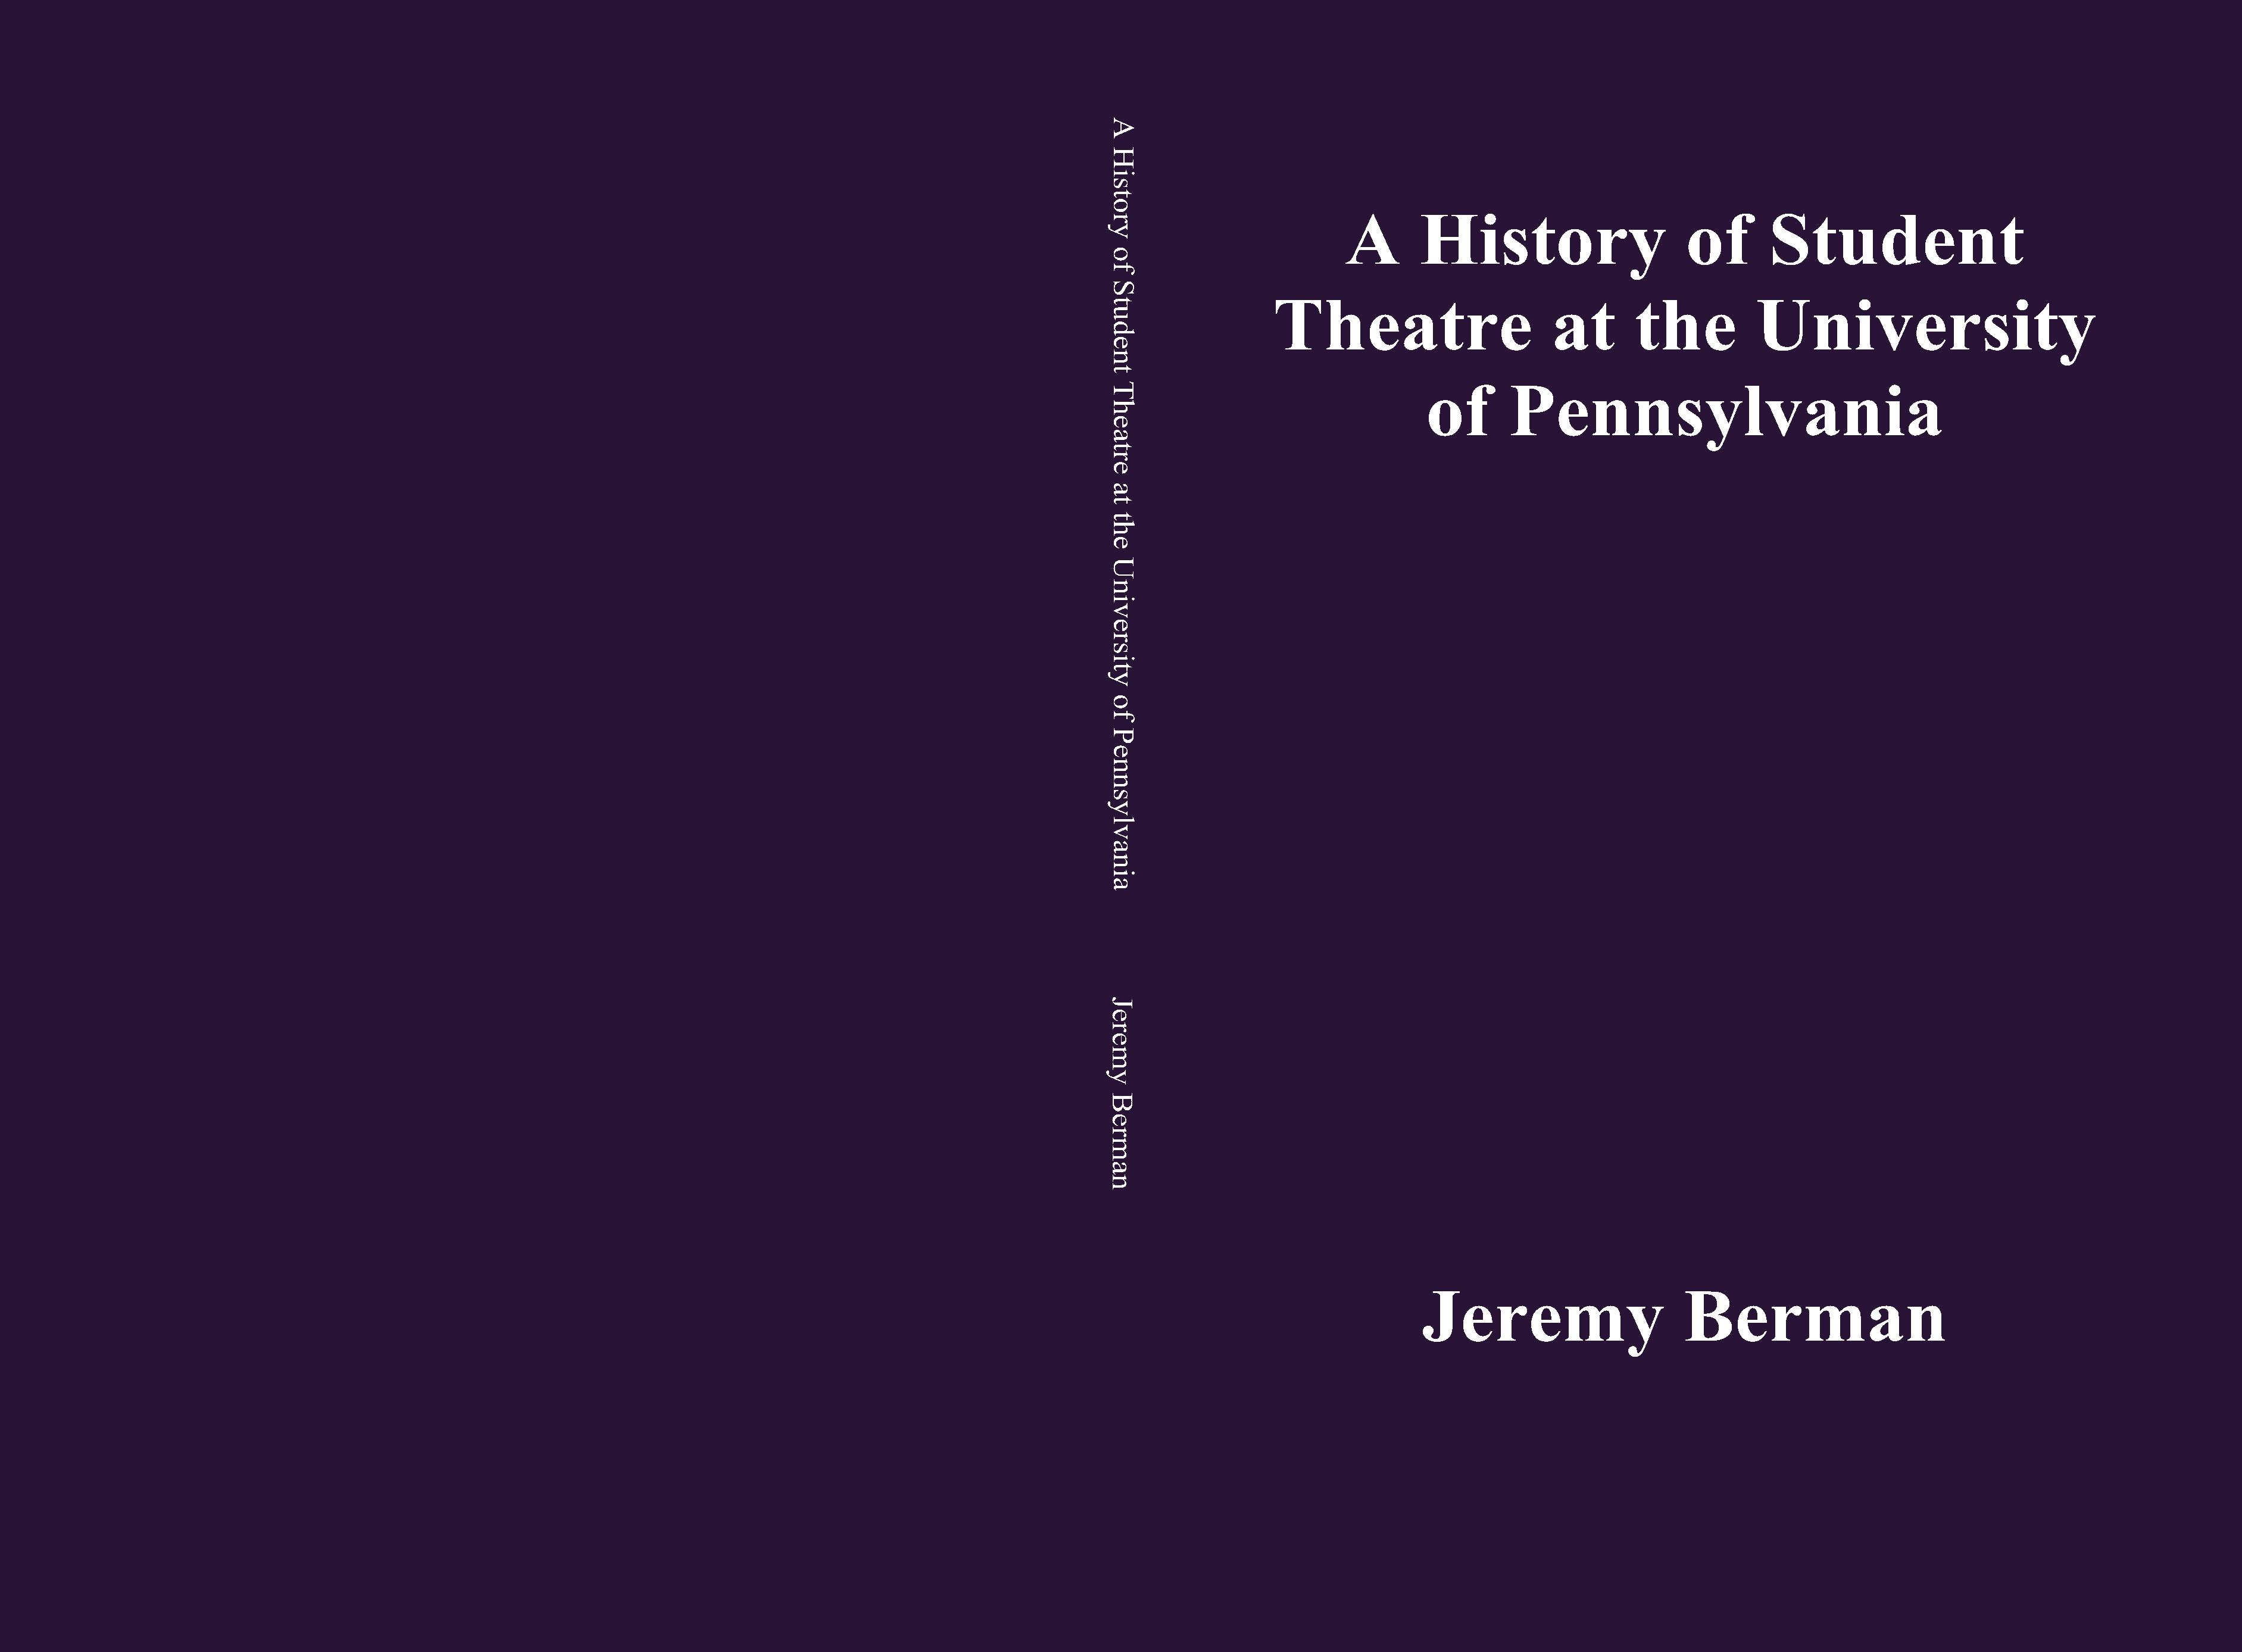 A History of Student Theatre at the University of Pennsylvania cover image